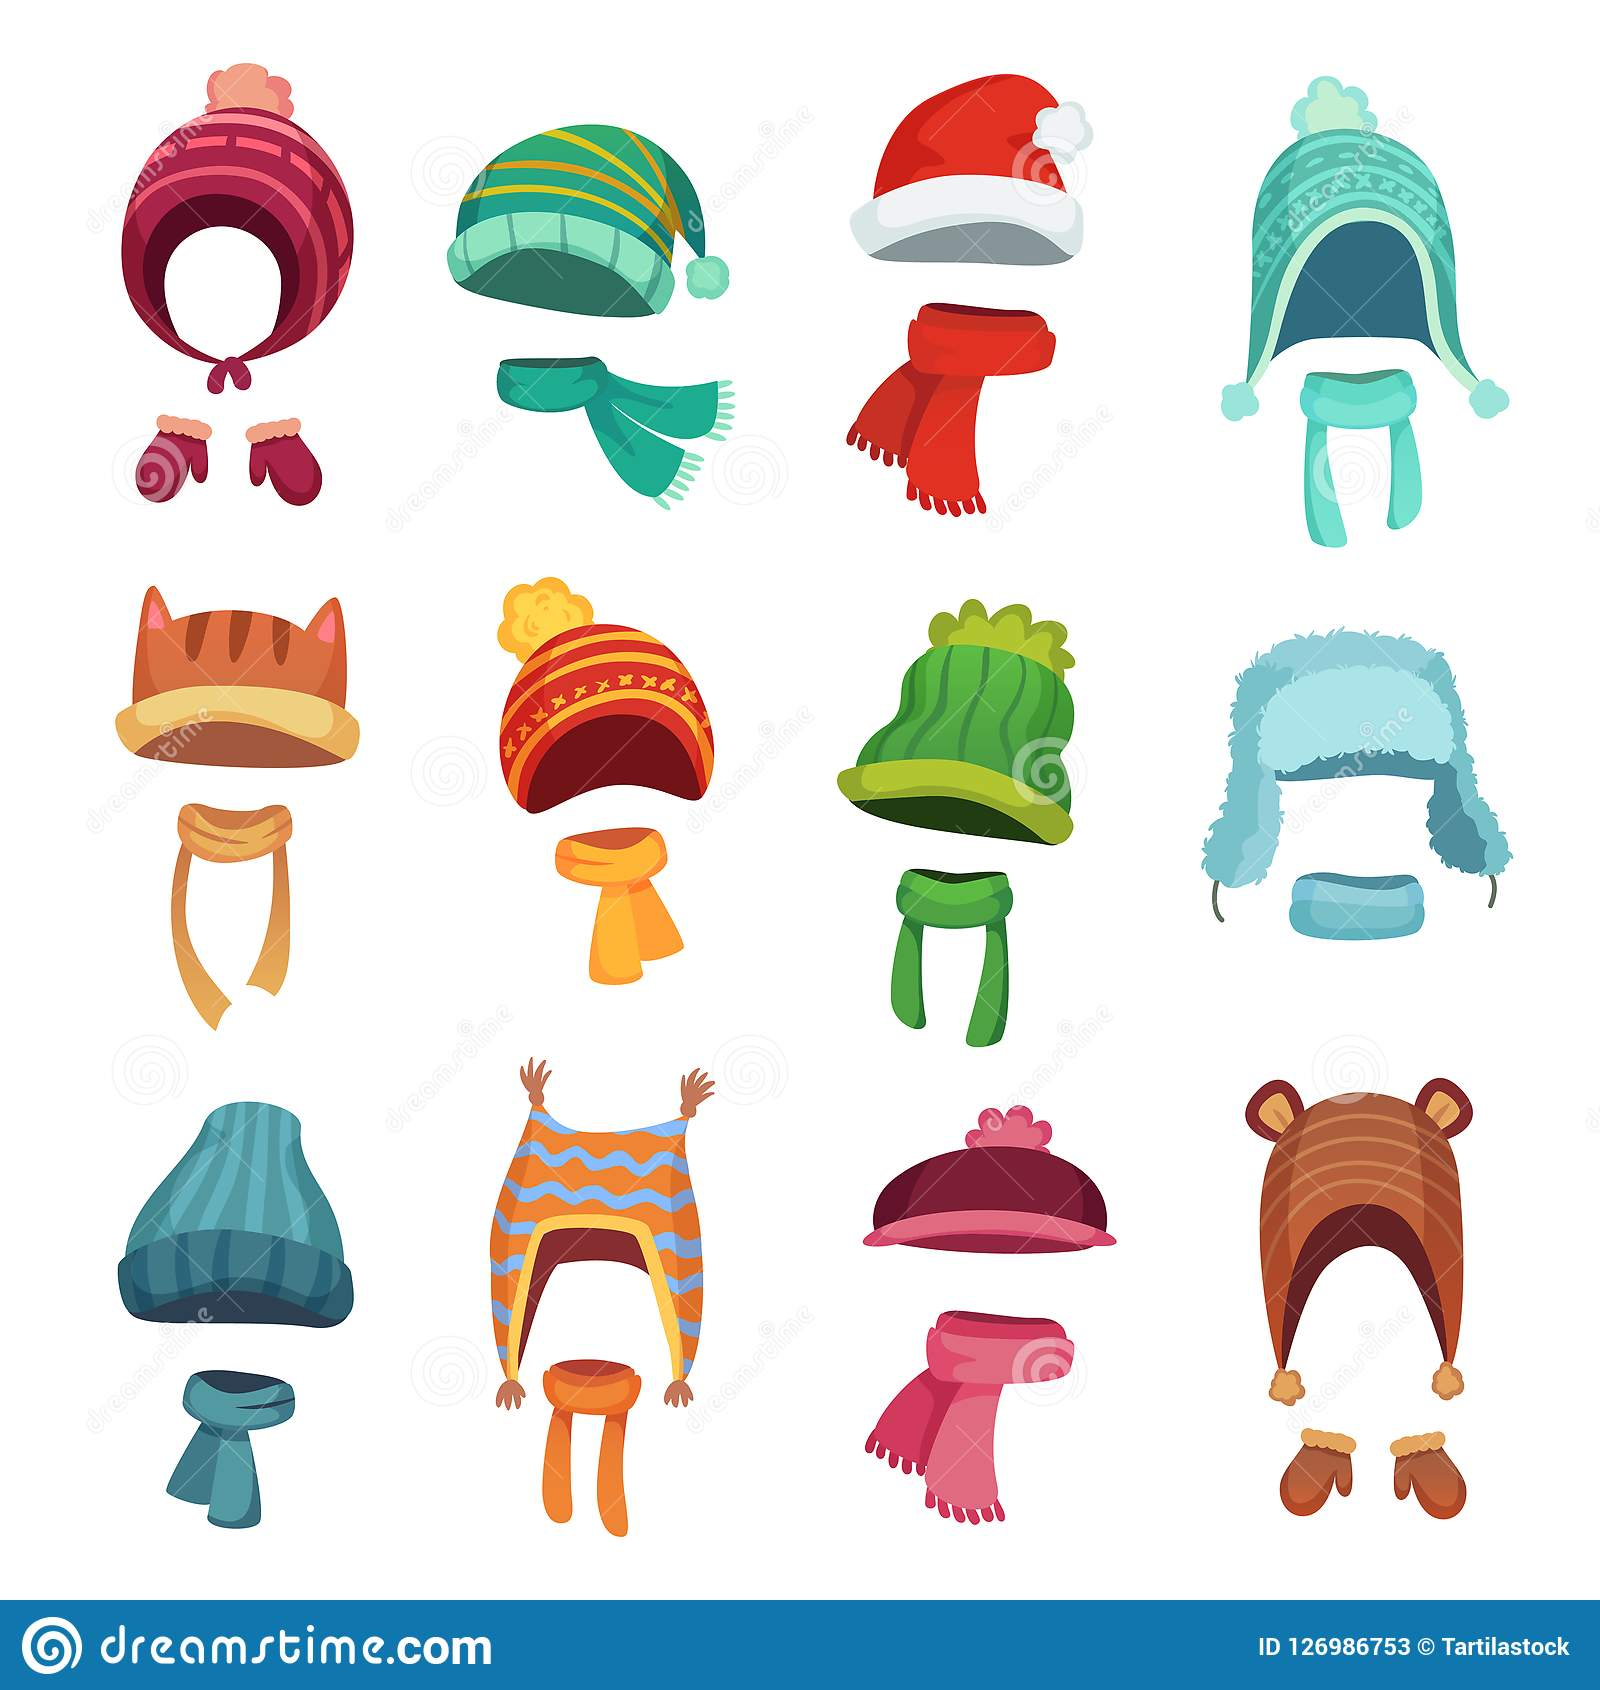 bb2df0d3c1d03 Winter kids hat. Warm childrens hats and scarves. Headwear and accessories  for boys and